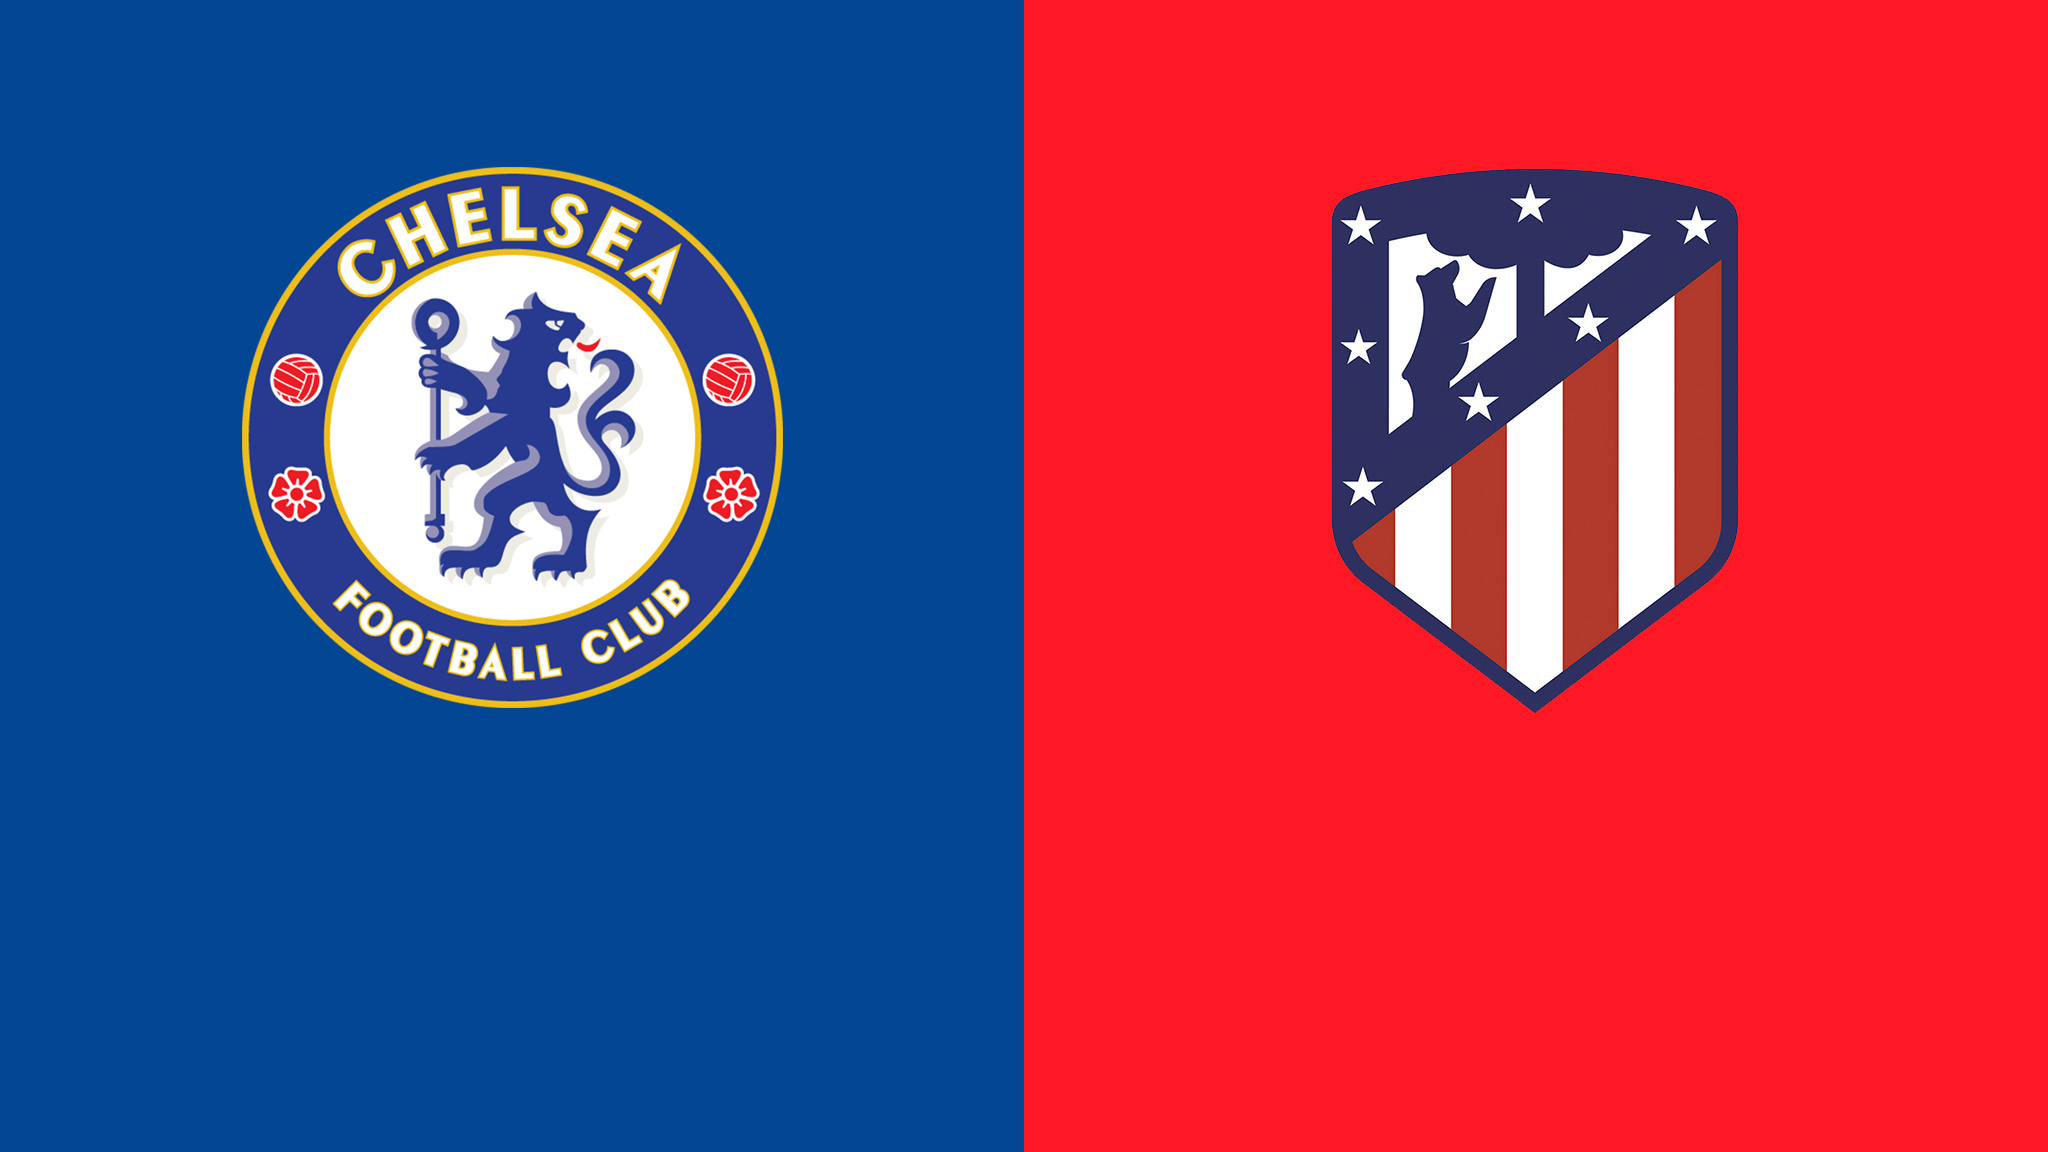 Watch the Atletico Madrid vs Chelsea match in the UEFA Champions League night shot